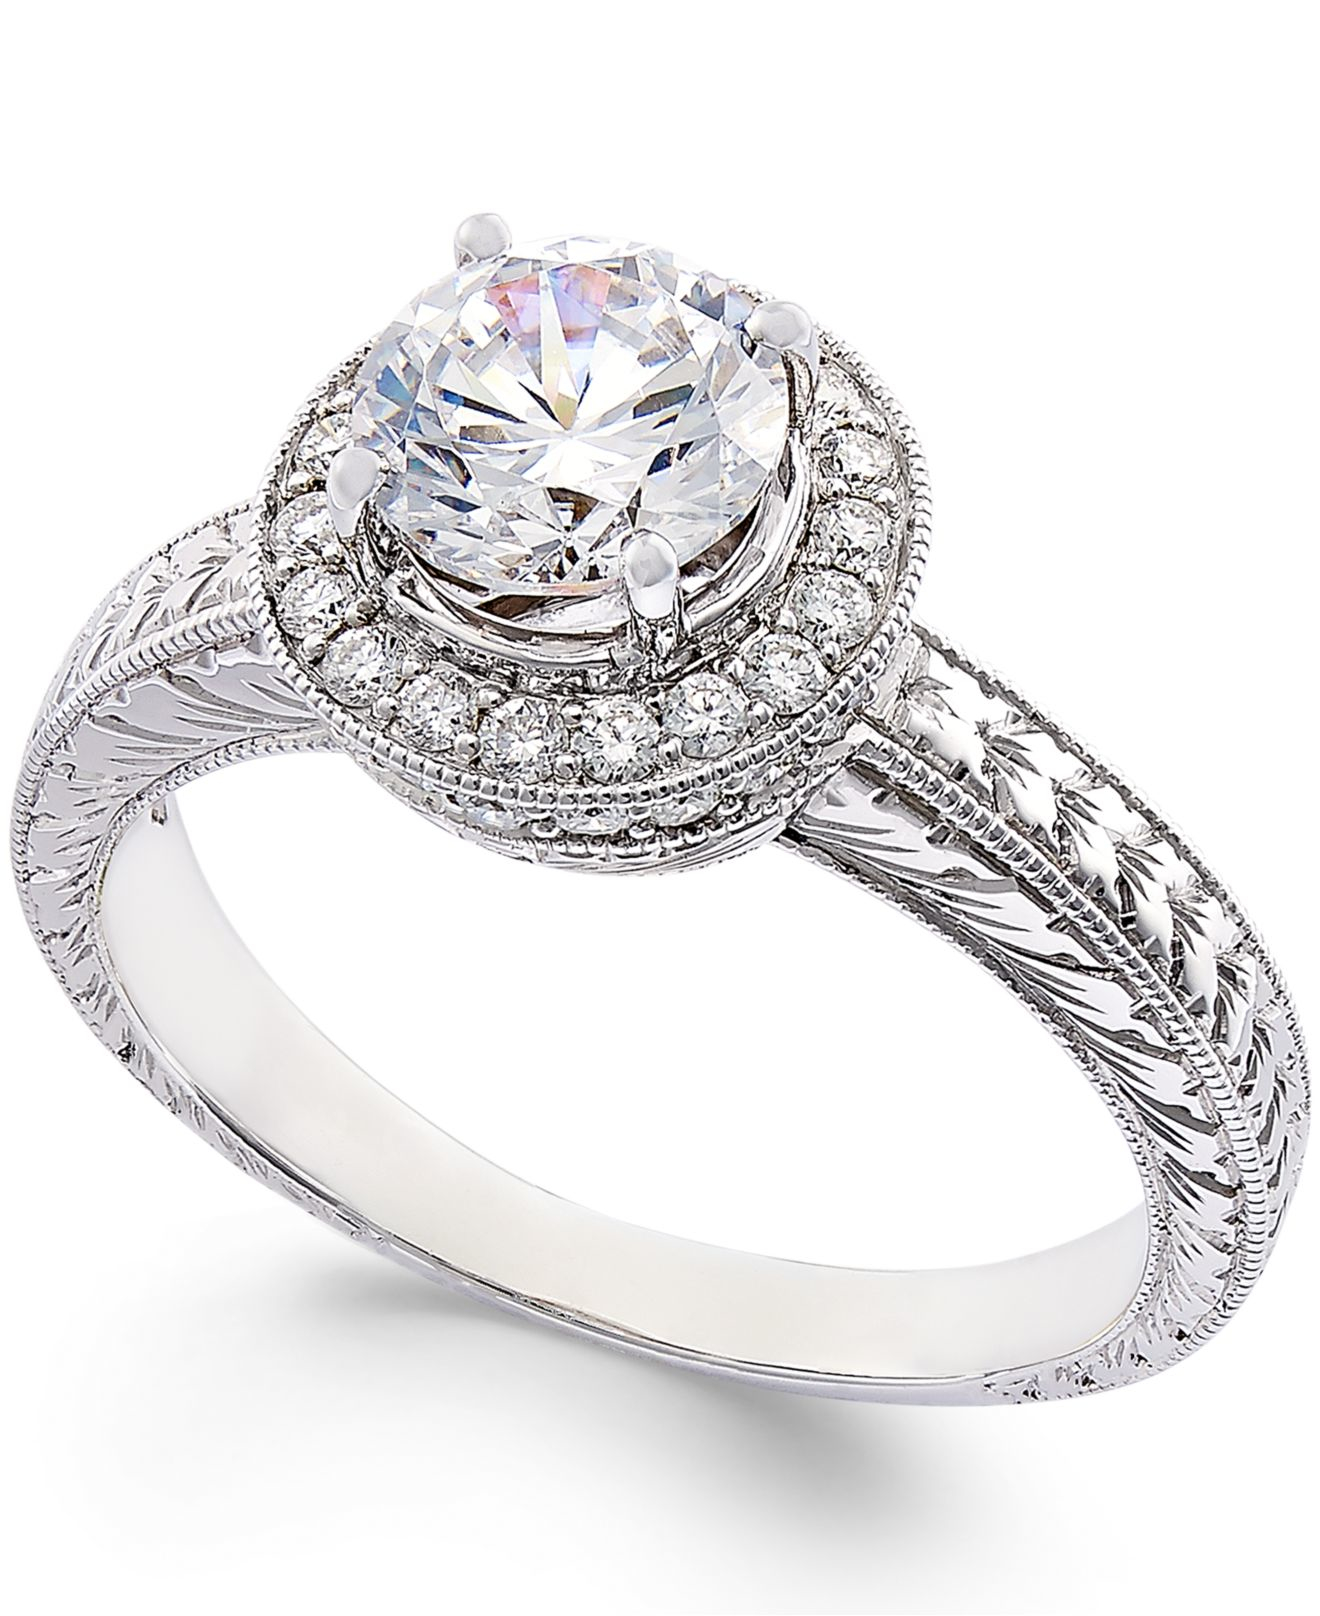 Macy s Certified Diamond Engagement Ring In 18k White Gold 1 3 8 Ct T w